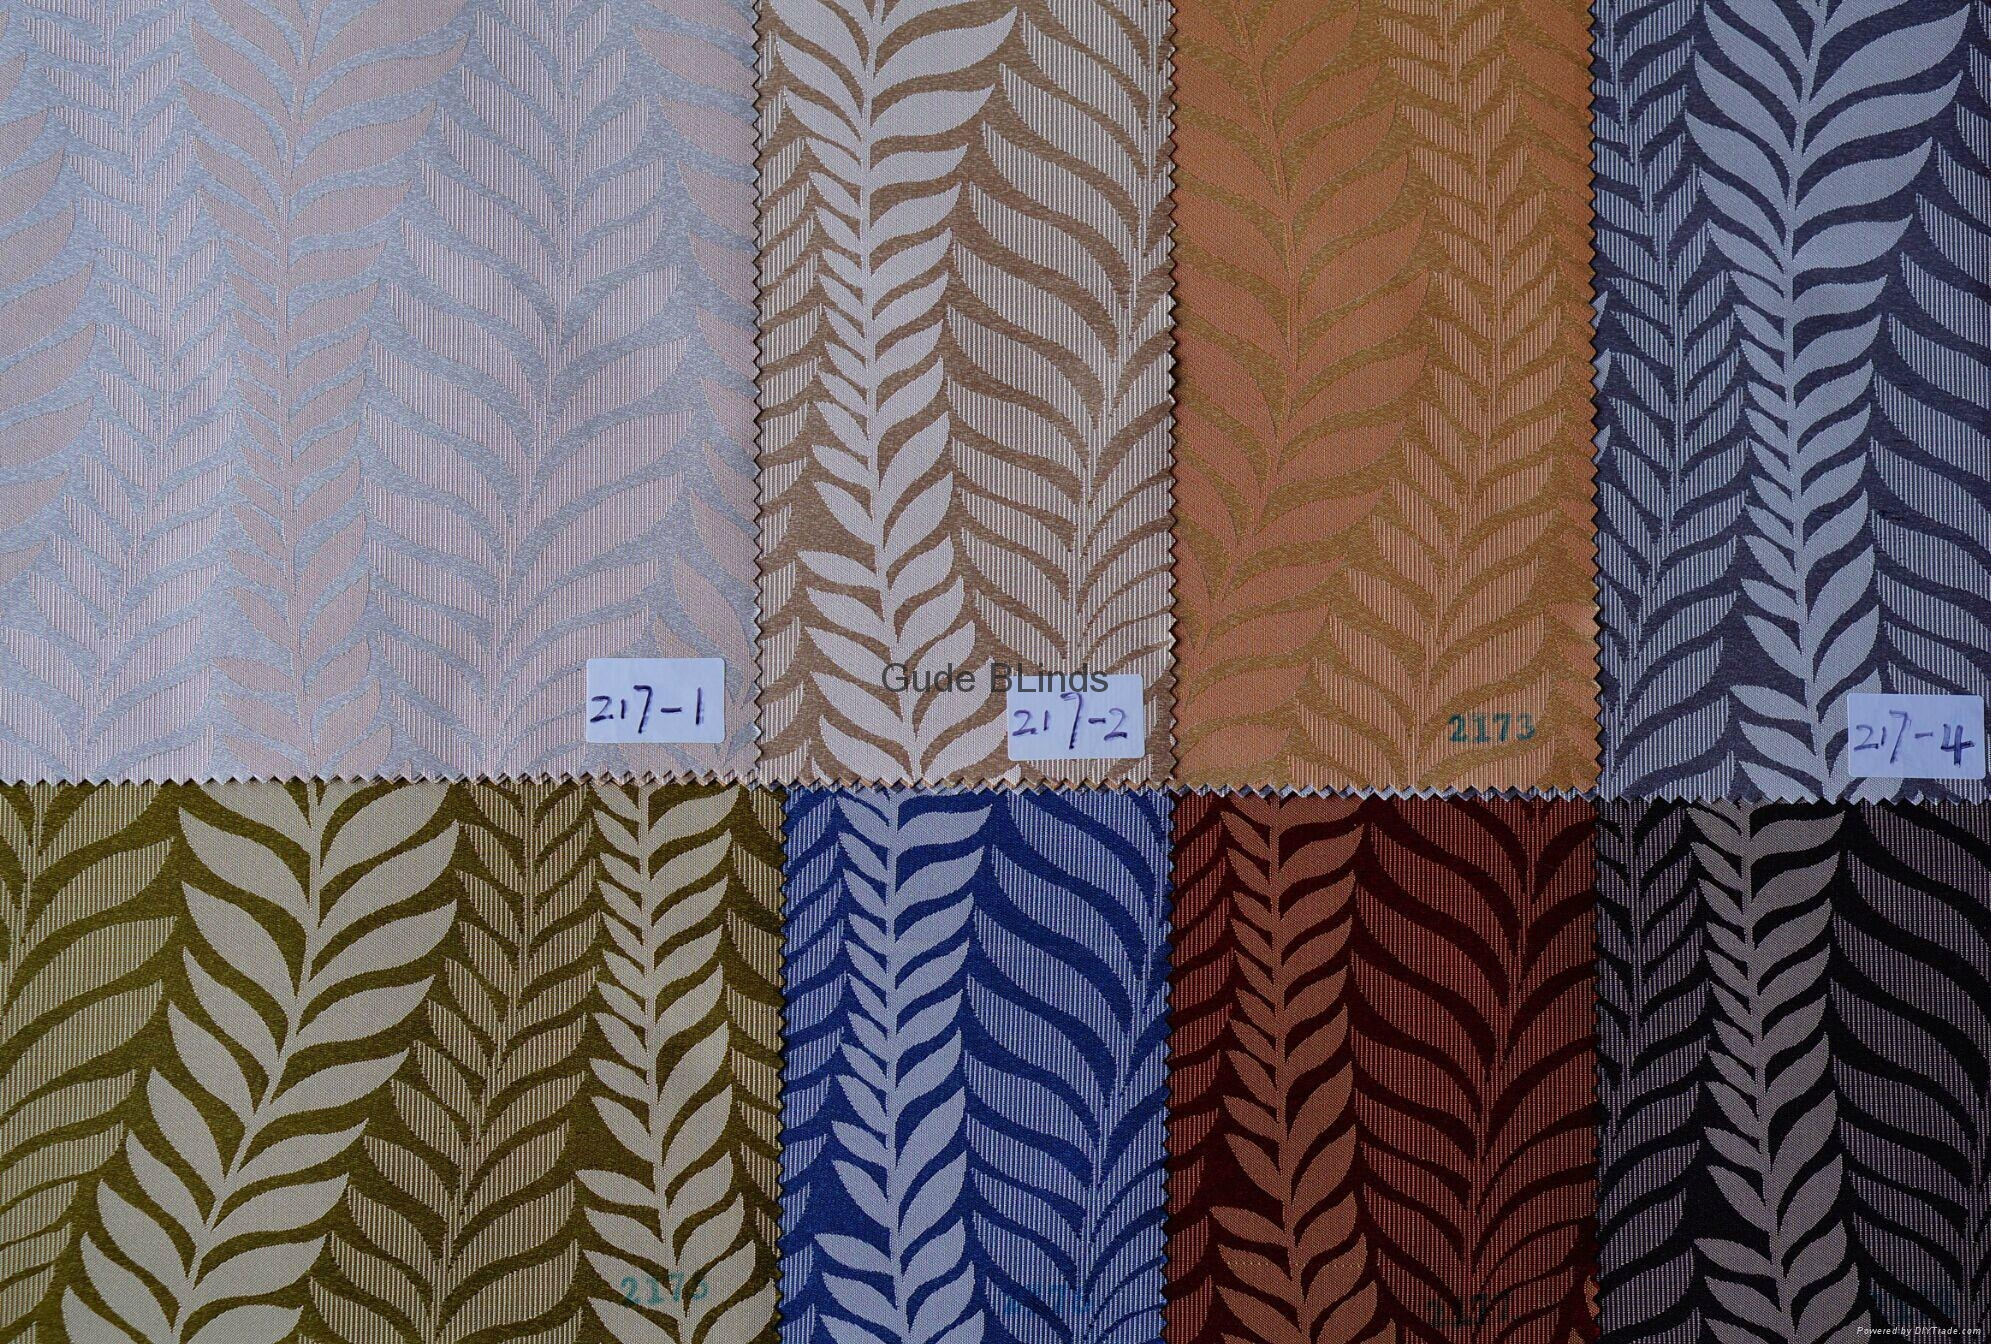 Roller Blinds Fabric 217 4